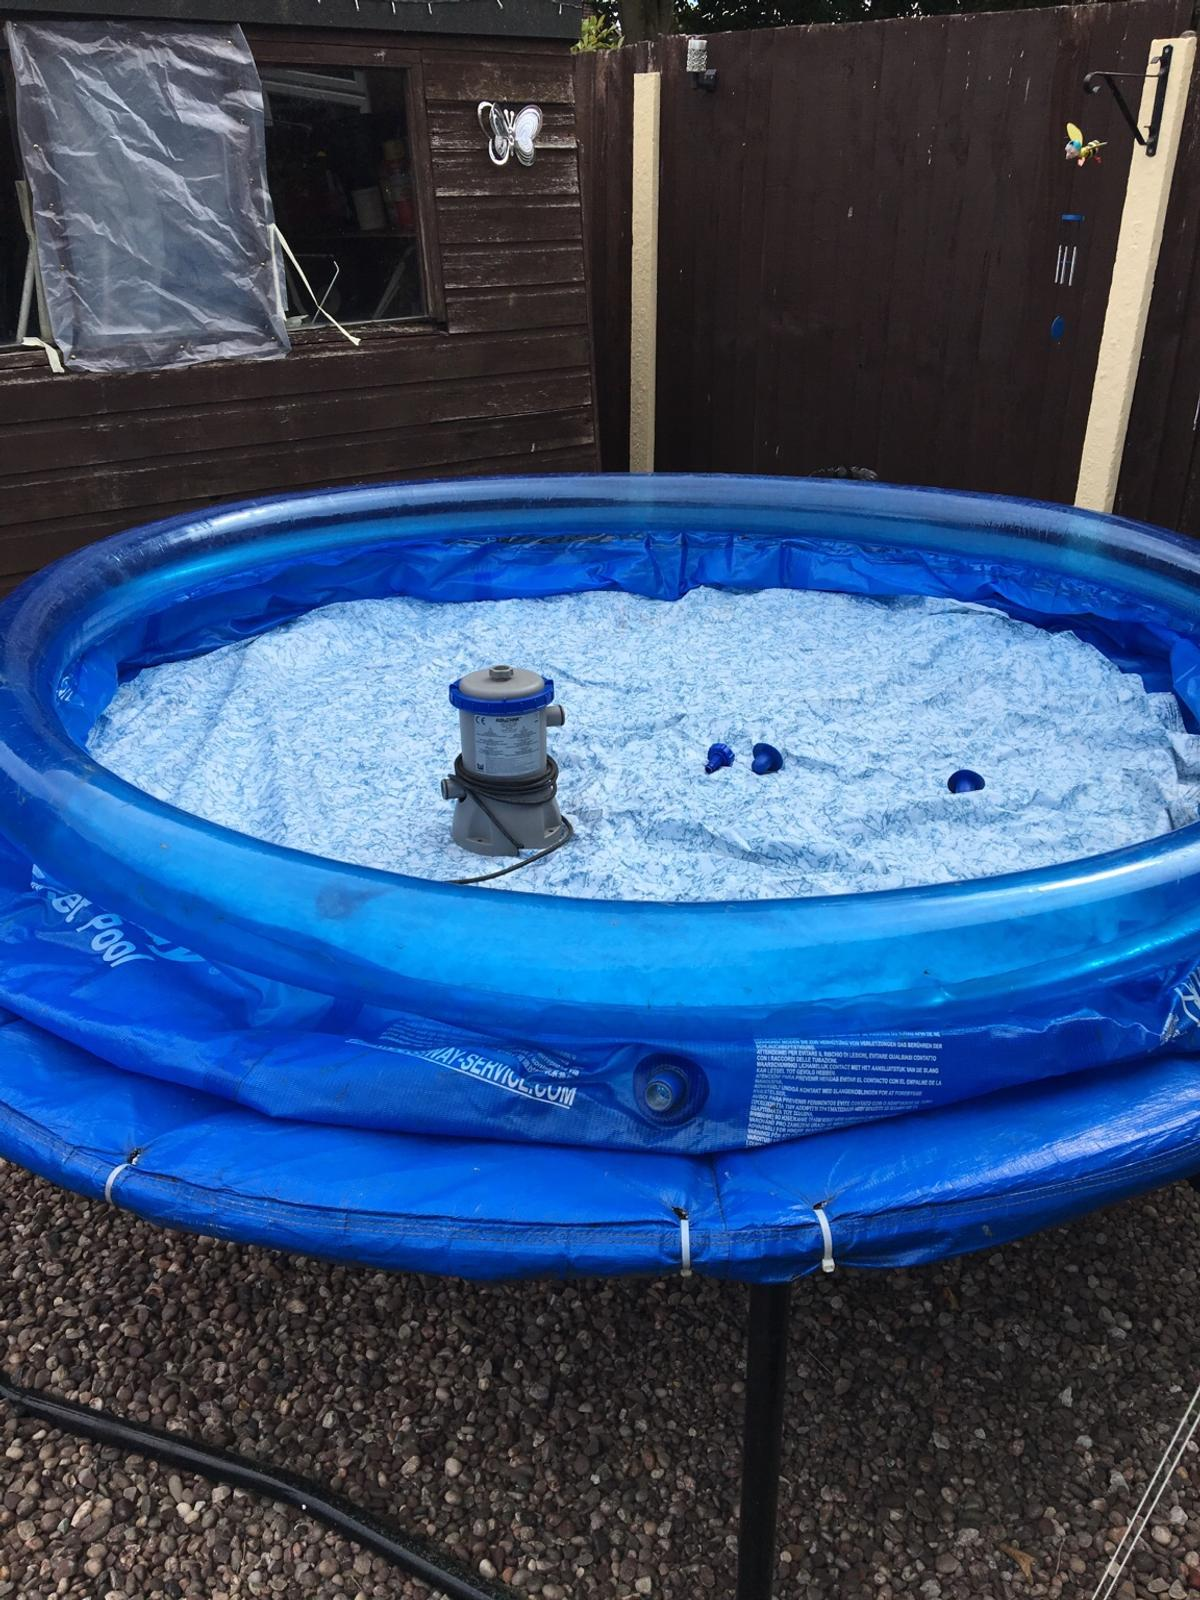 8ft bestway swimming pool and filter in WN4 Wigan for £25.00 for ...